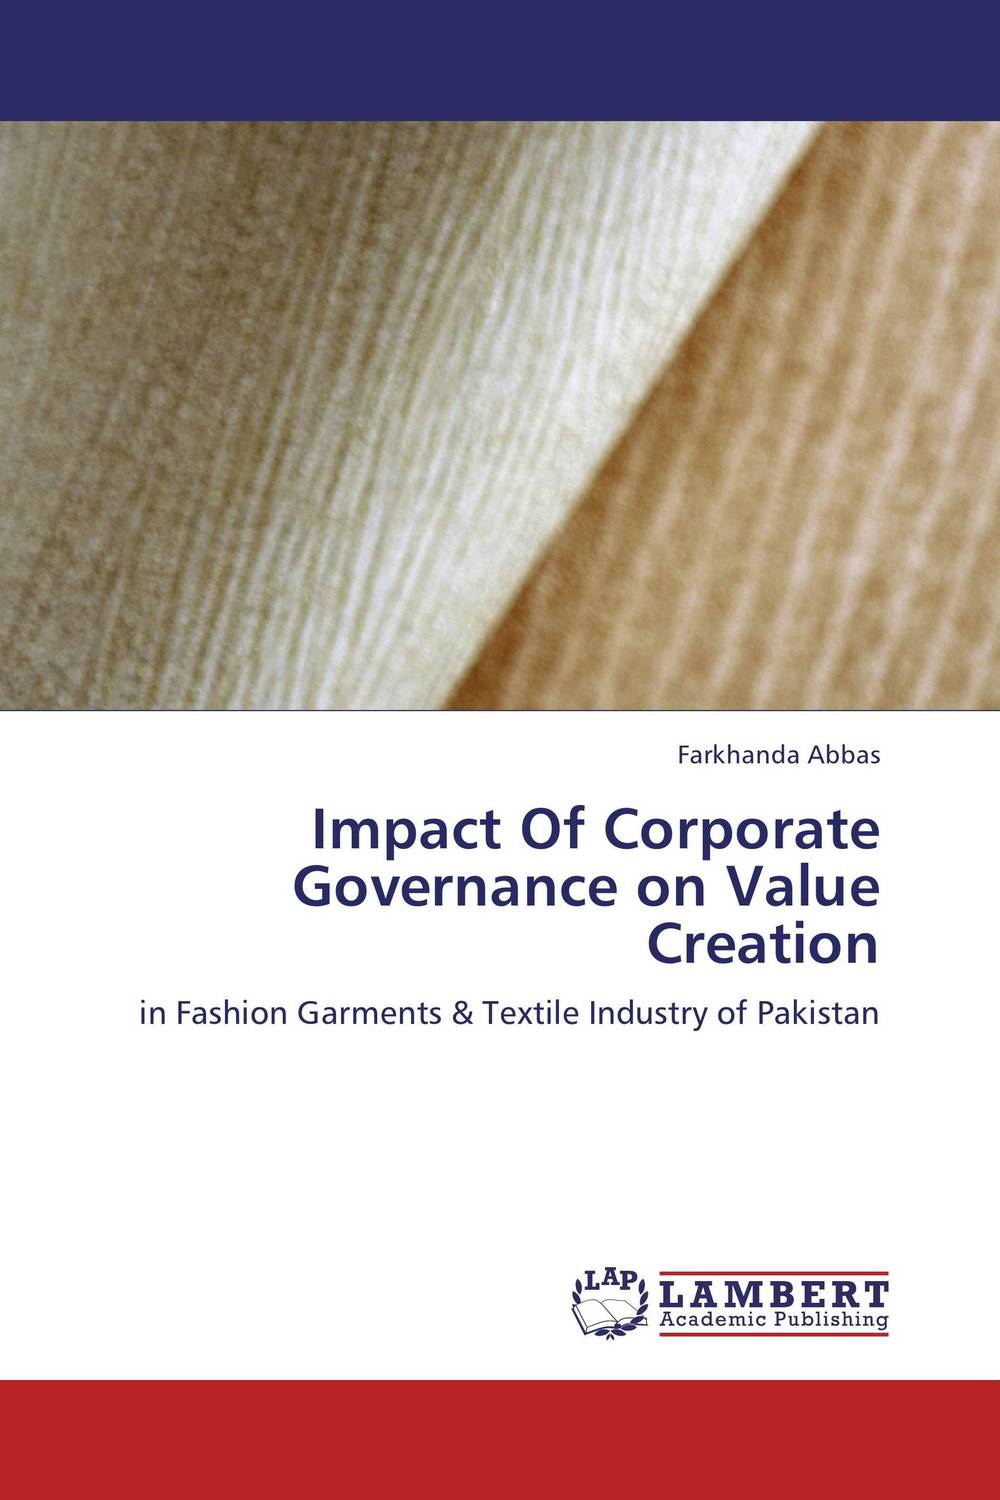 Impact Of Corporate Governance on Value Creation corporate governance capital structure and firm value